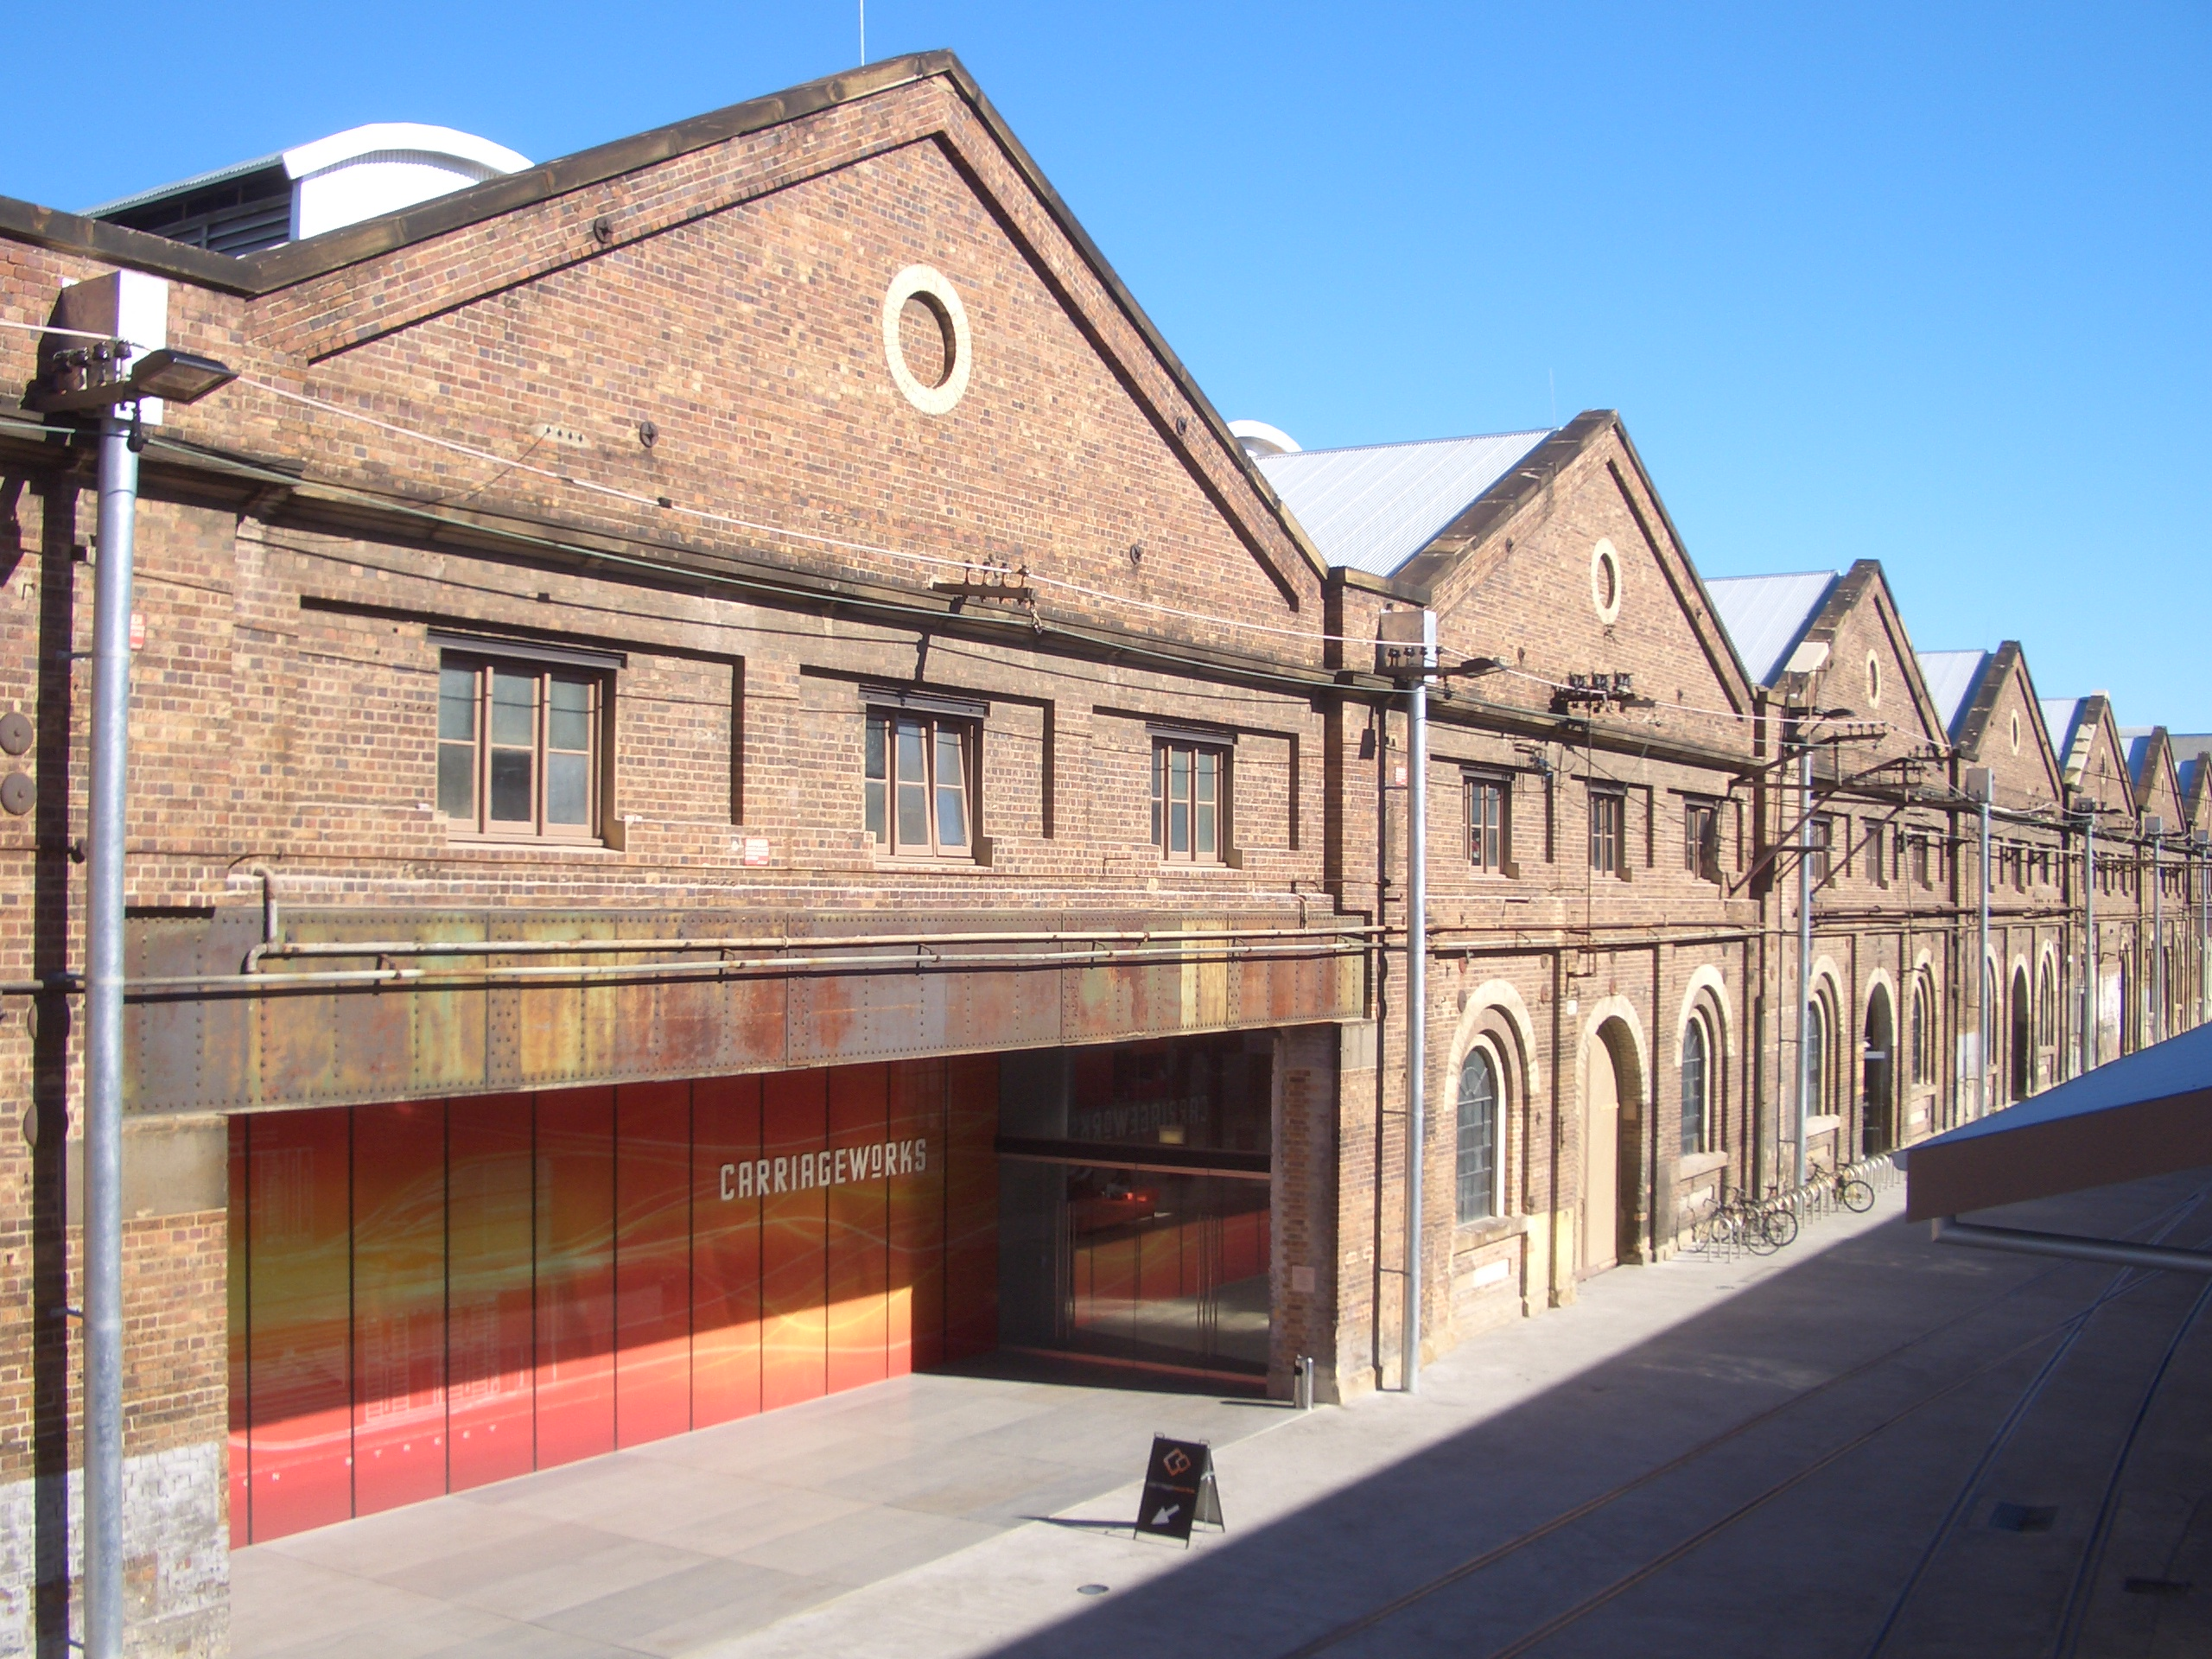 Carriageworks. Image: Wikimedia Commons